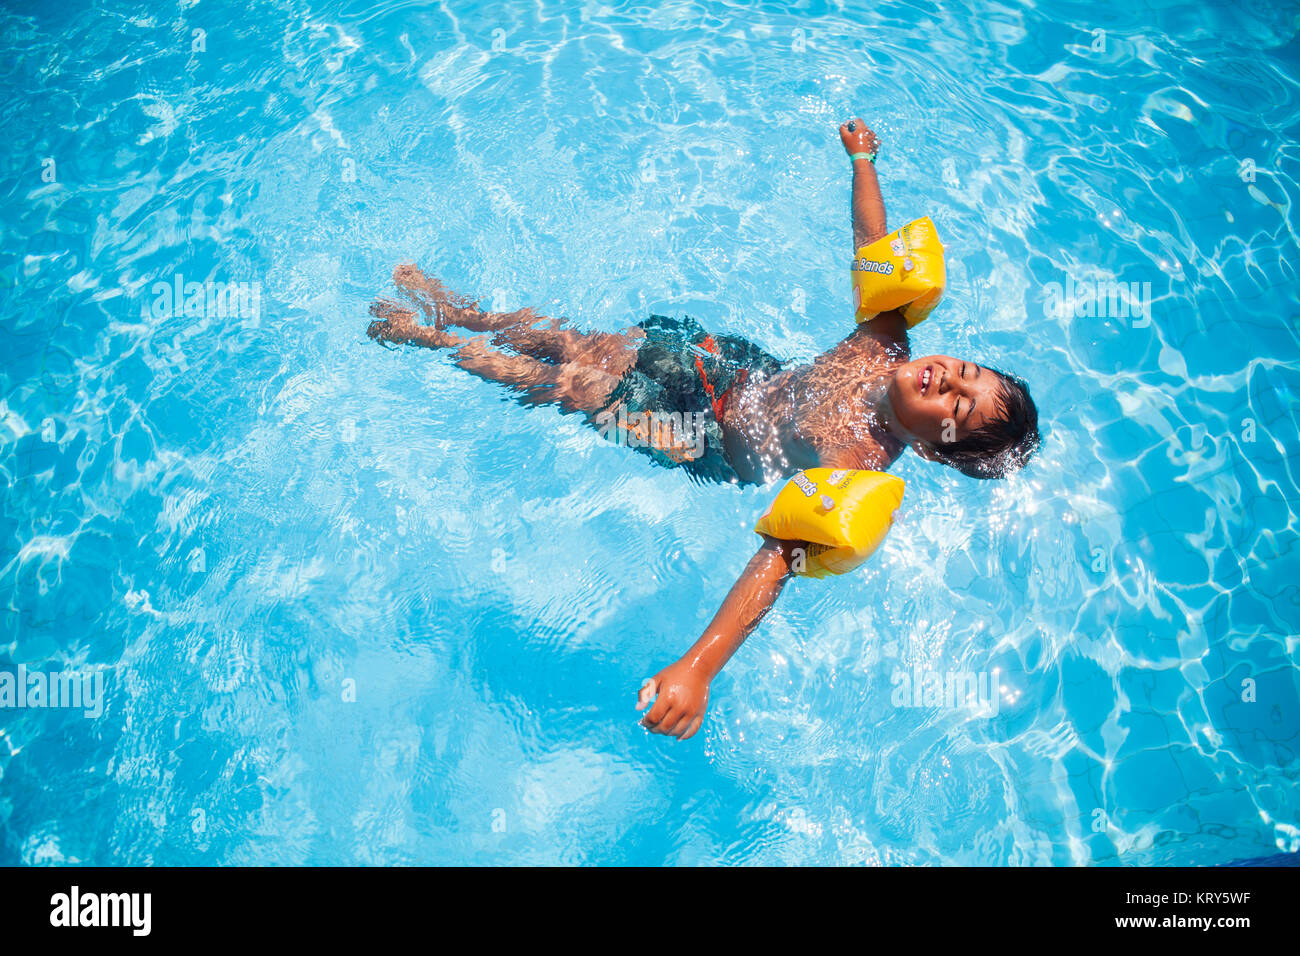 A boy wearing water wings floating in a pool - Stock Image